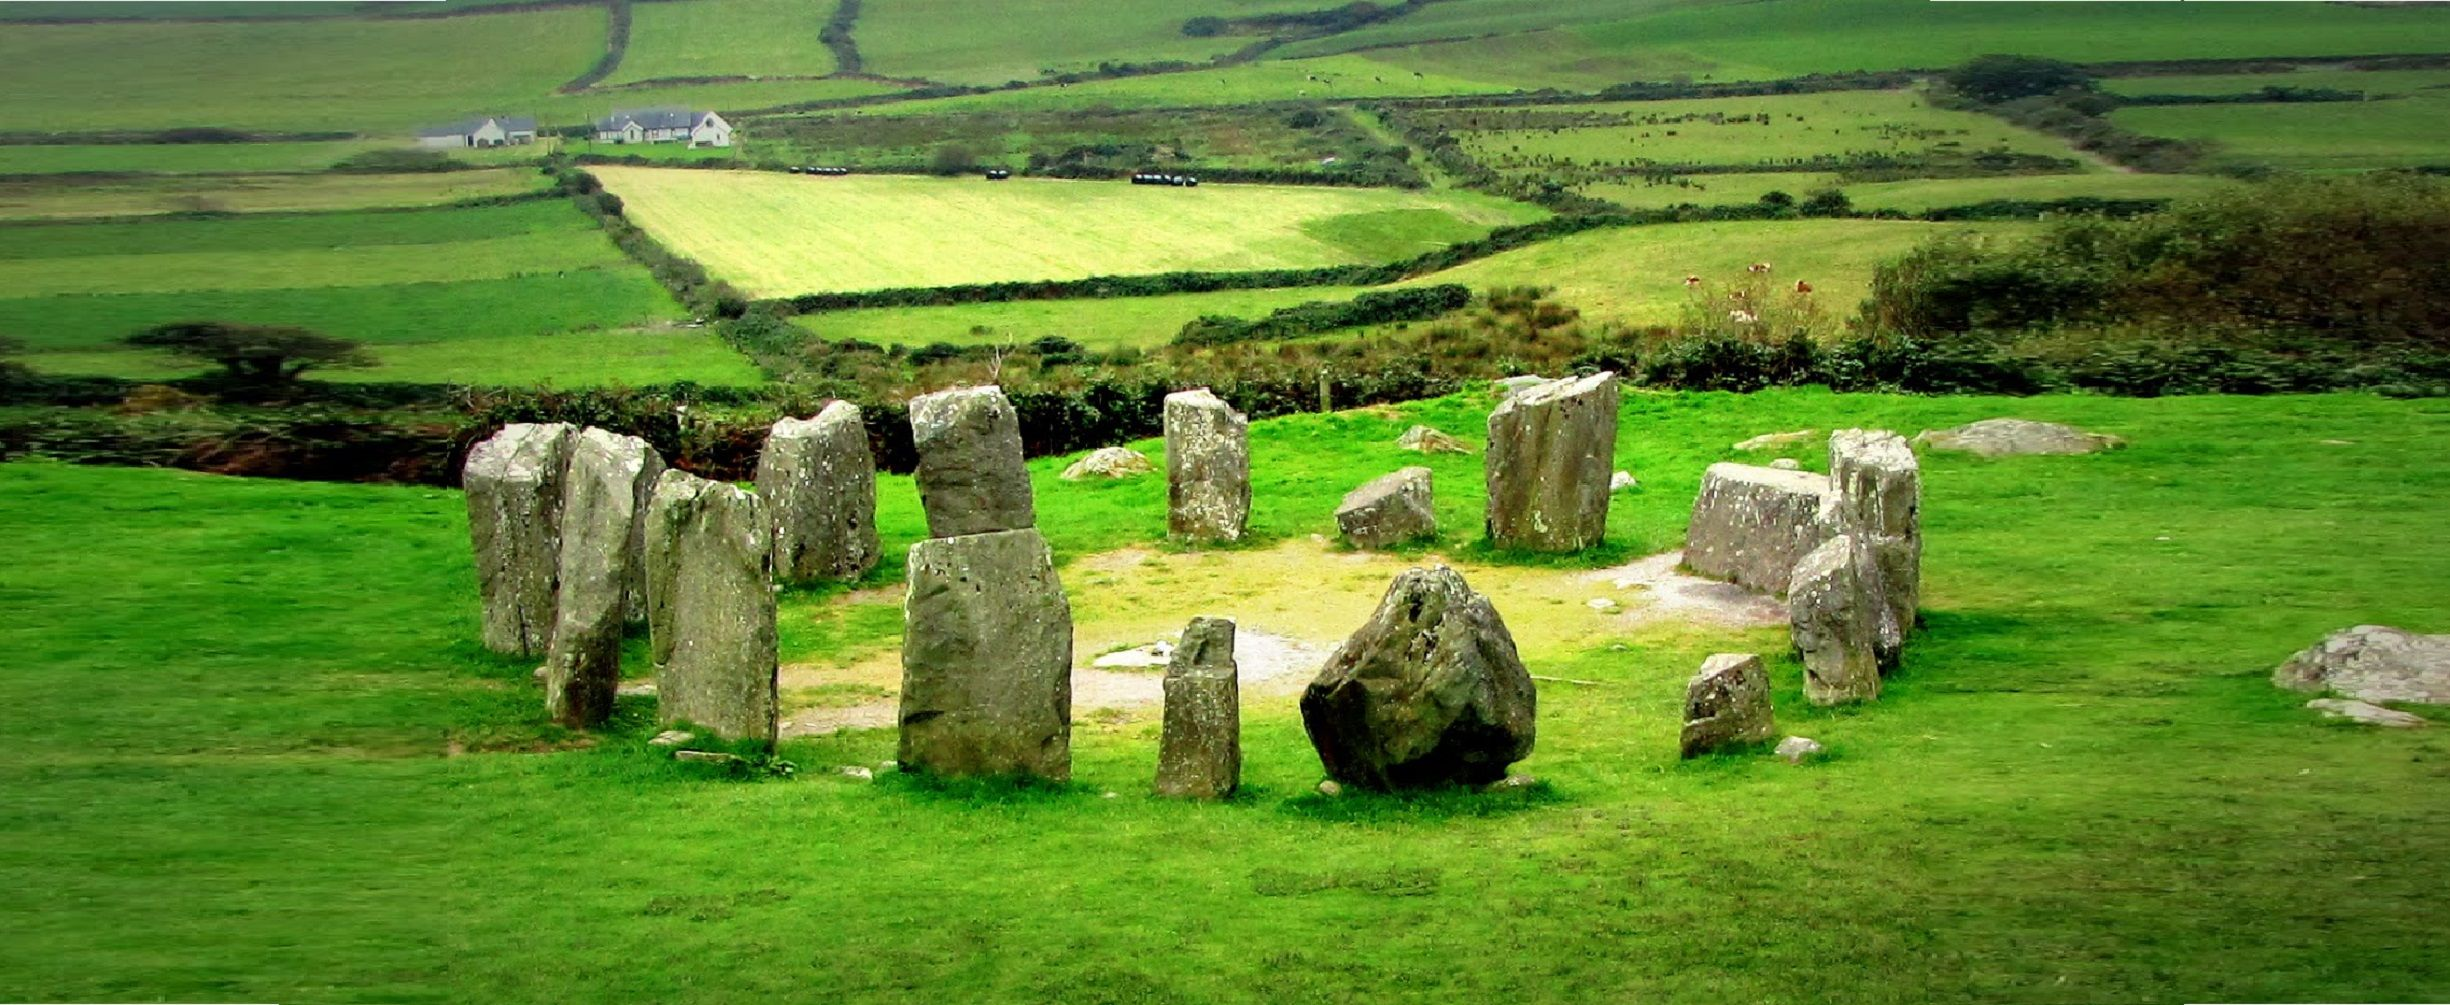 ireland-drombeg-stone-circle-00-haunted-journeys